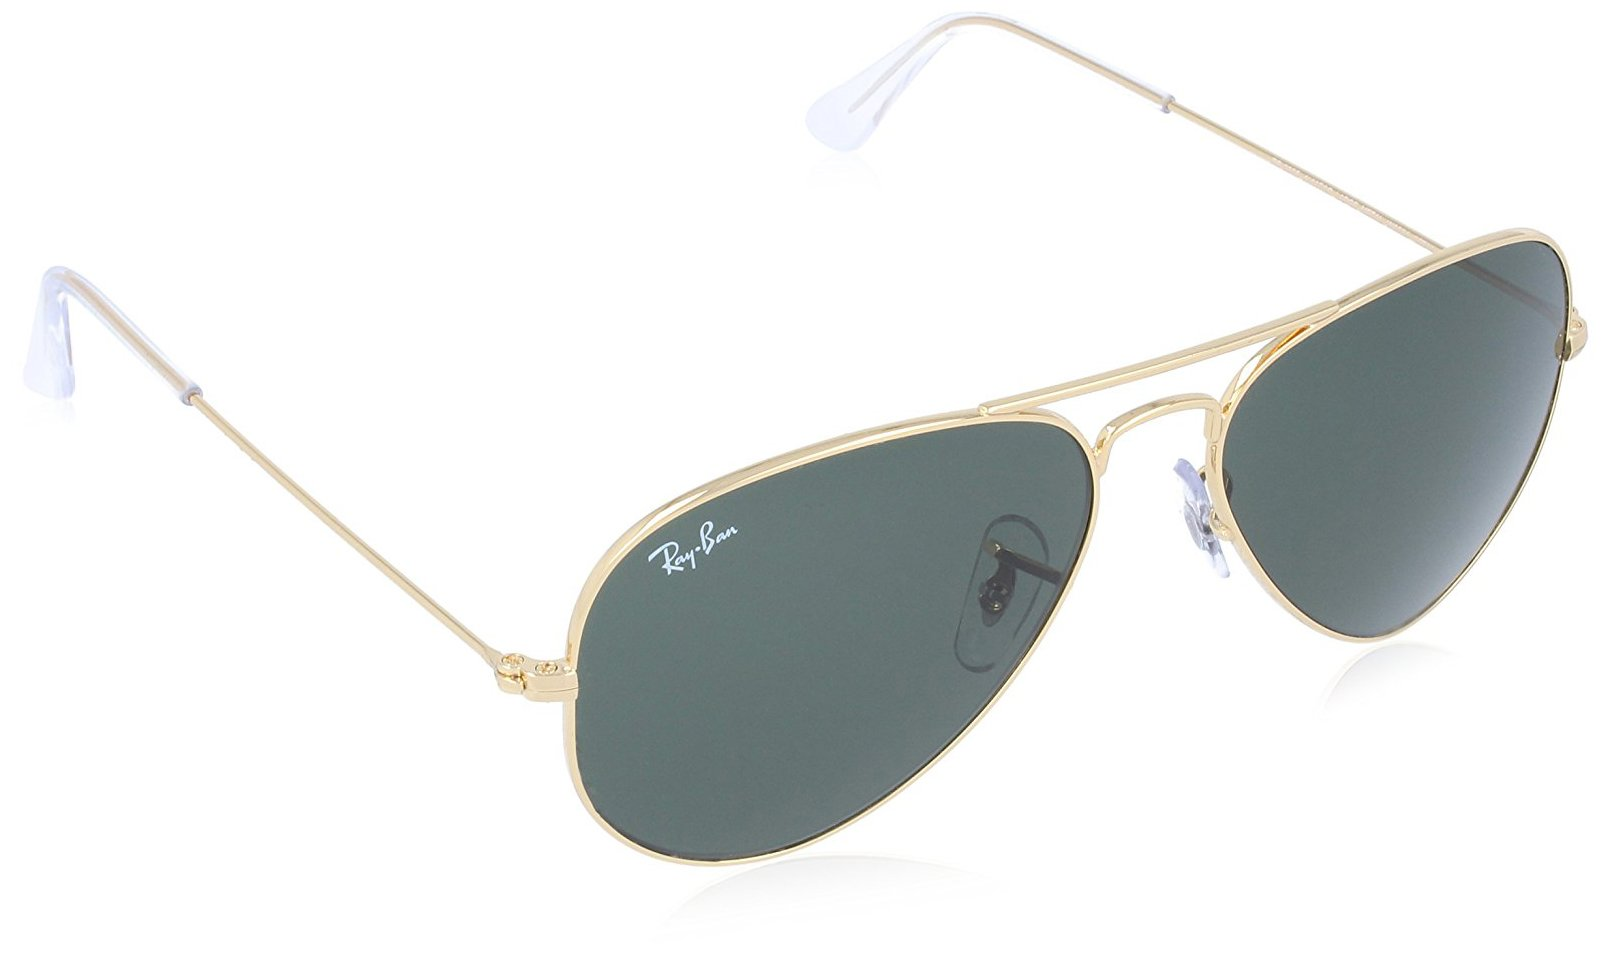 Ray-Ban Men's Large Metal Aviator Sunglasses, Gold, 55 mm